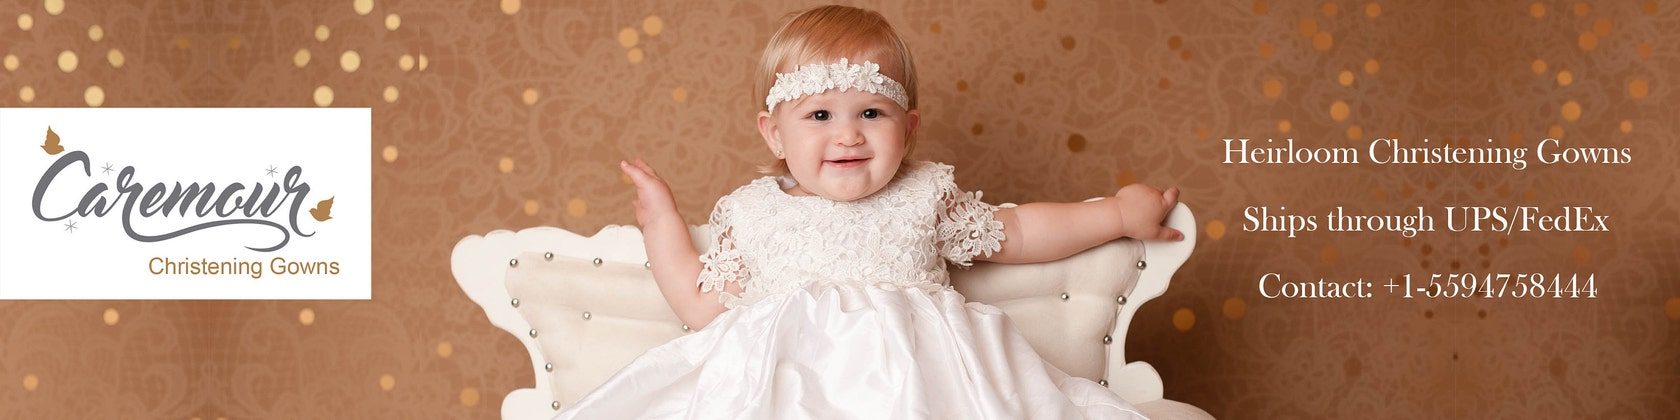 Exquisite Christening Gowns Handmade with Love by Caremour on Etsy